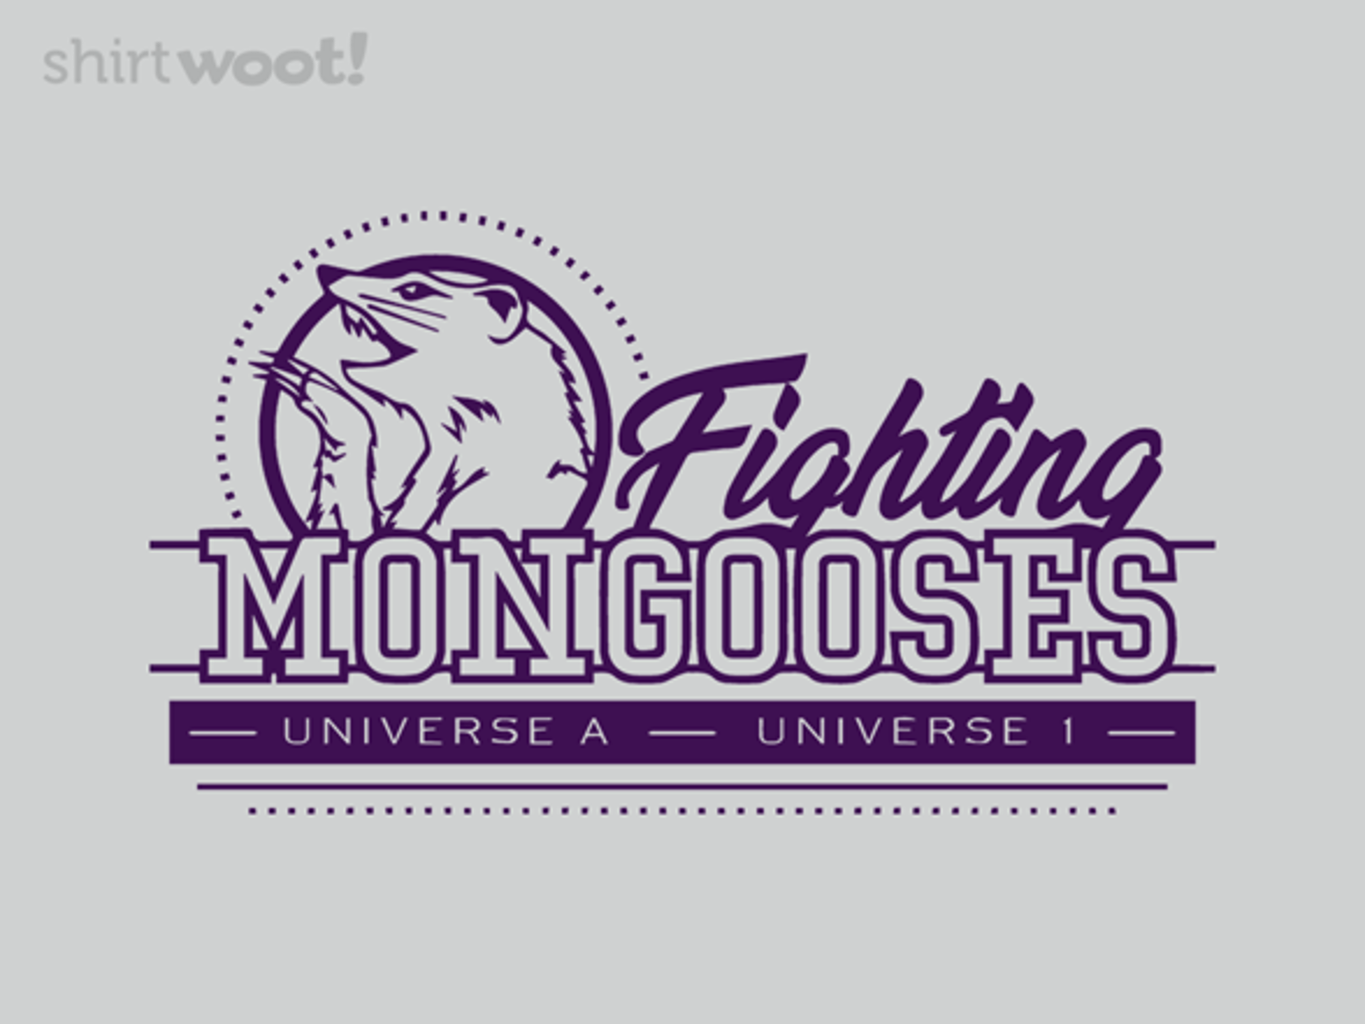 Woot!: Fighting Mongooses - $15.00 + Free shipping